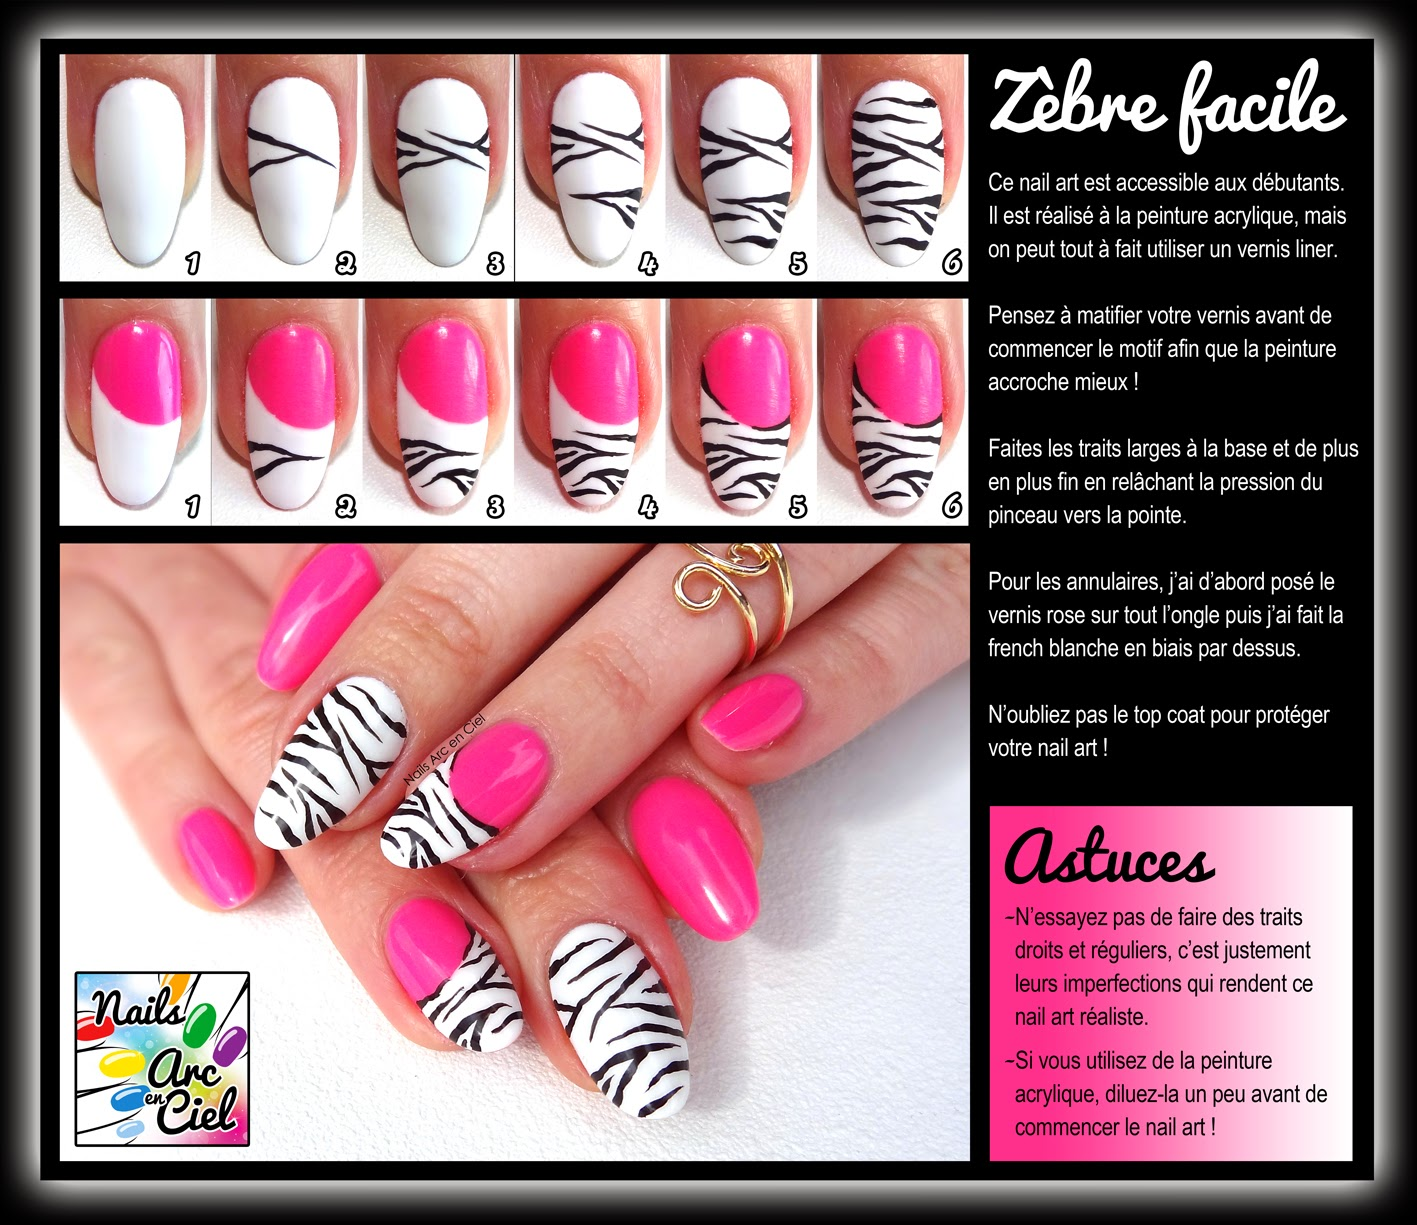 Nails arc en ciel tuto nail art z bre facile pour d butants - Nail art debutant ...